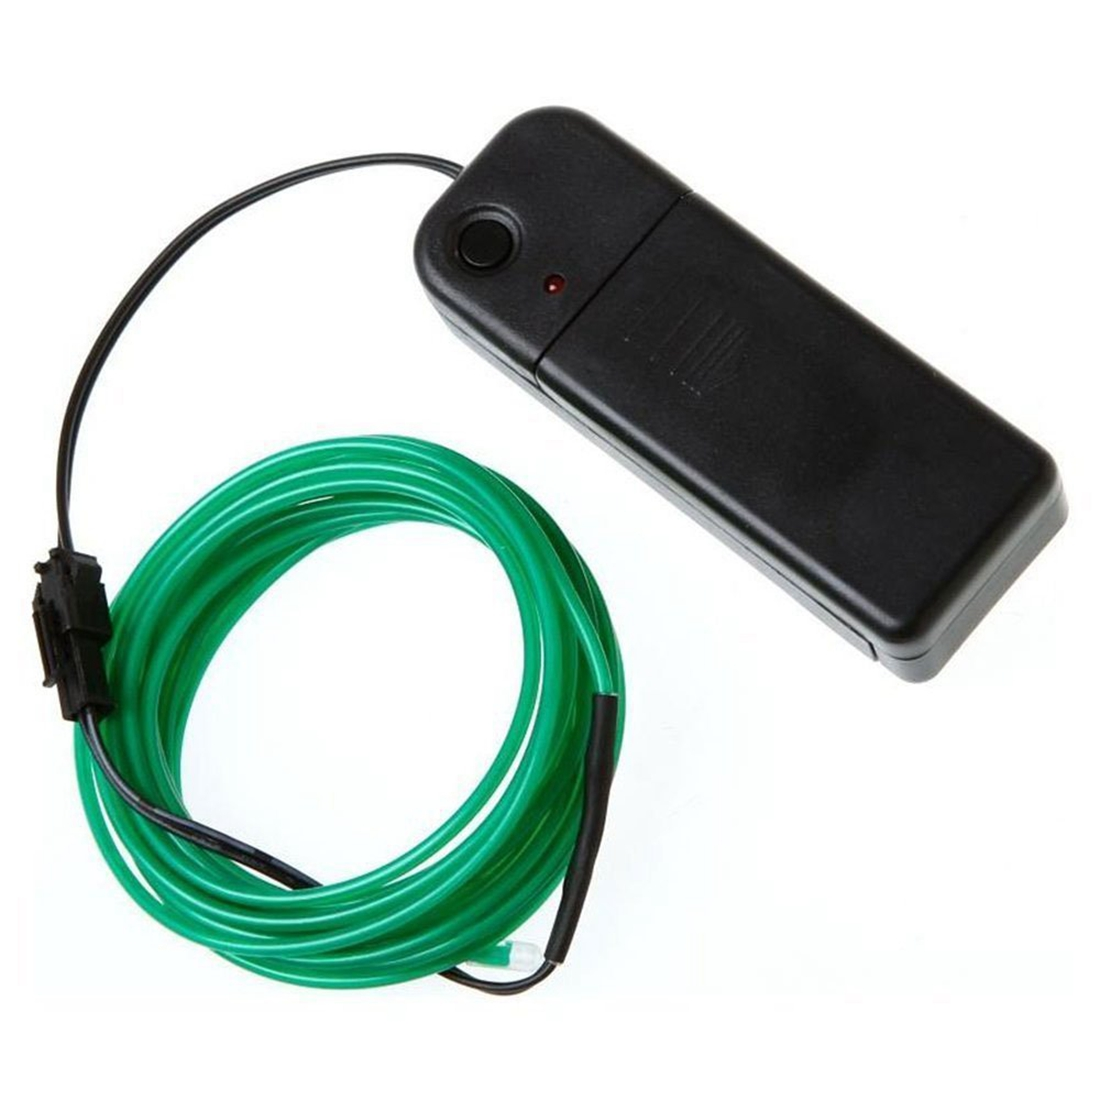 green,3m Maha Neon Glowing Electroluminescent Wire With Battery Pack Controller el Wire